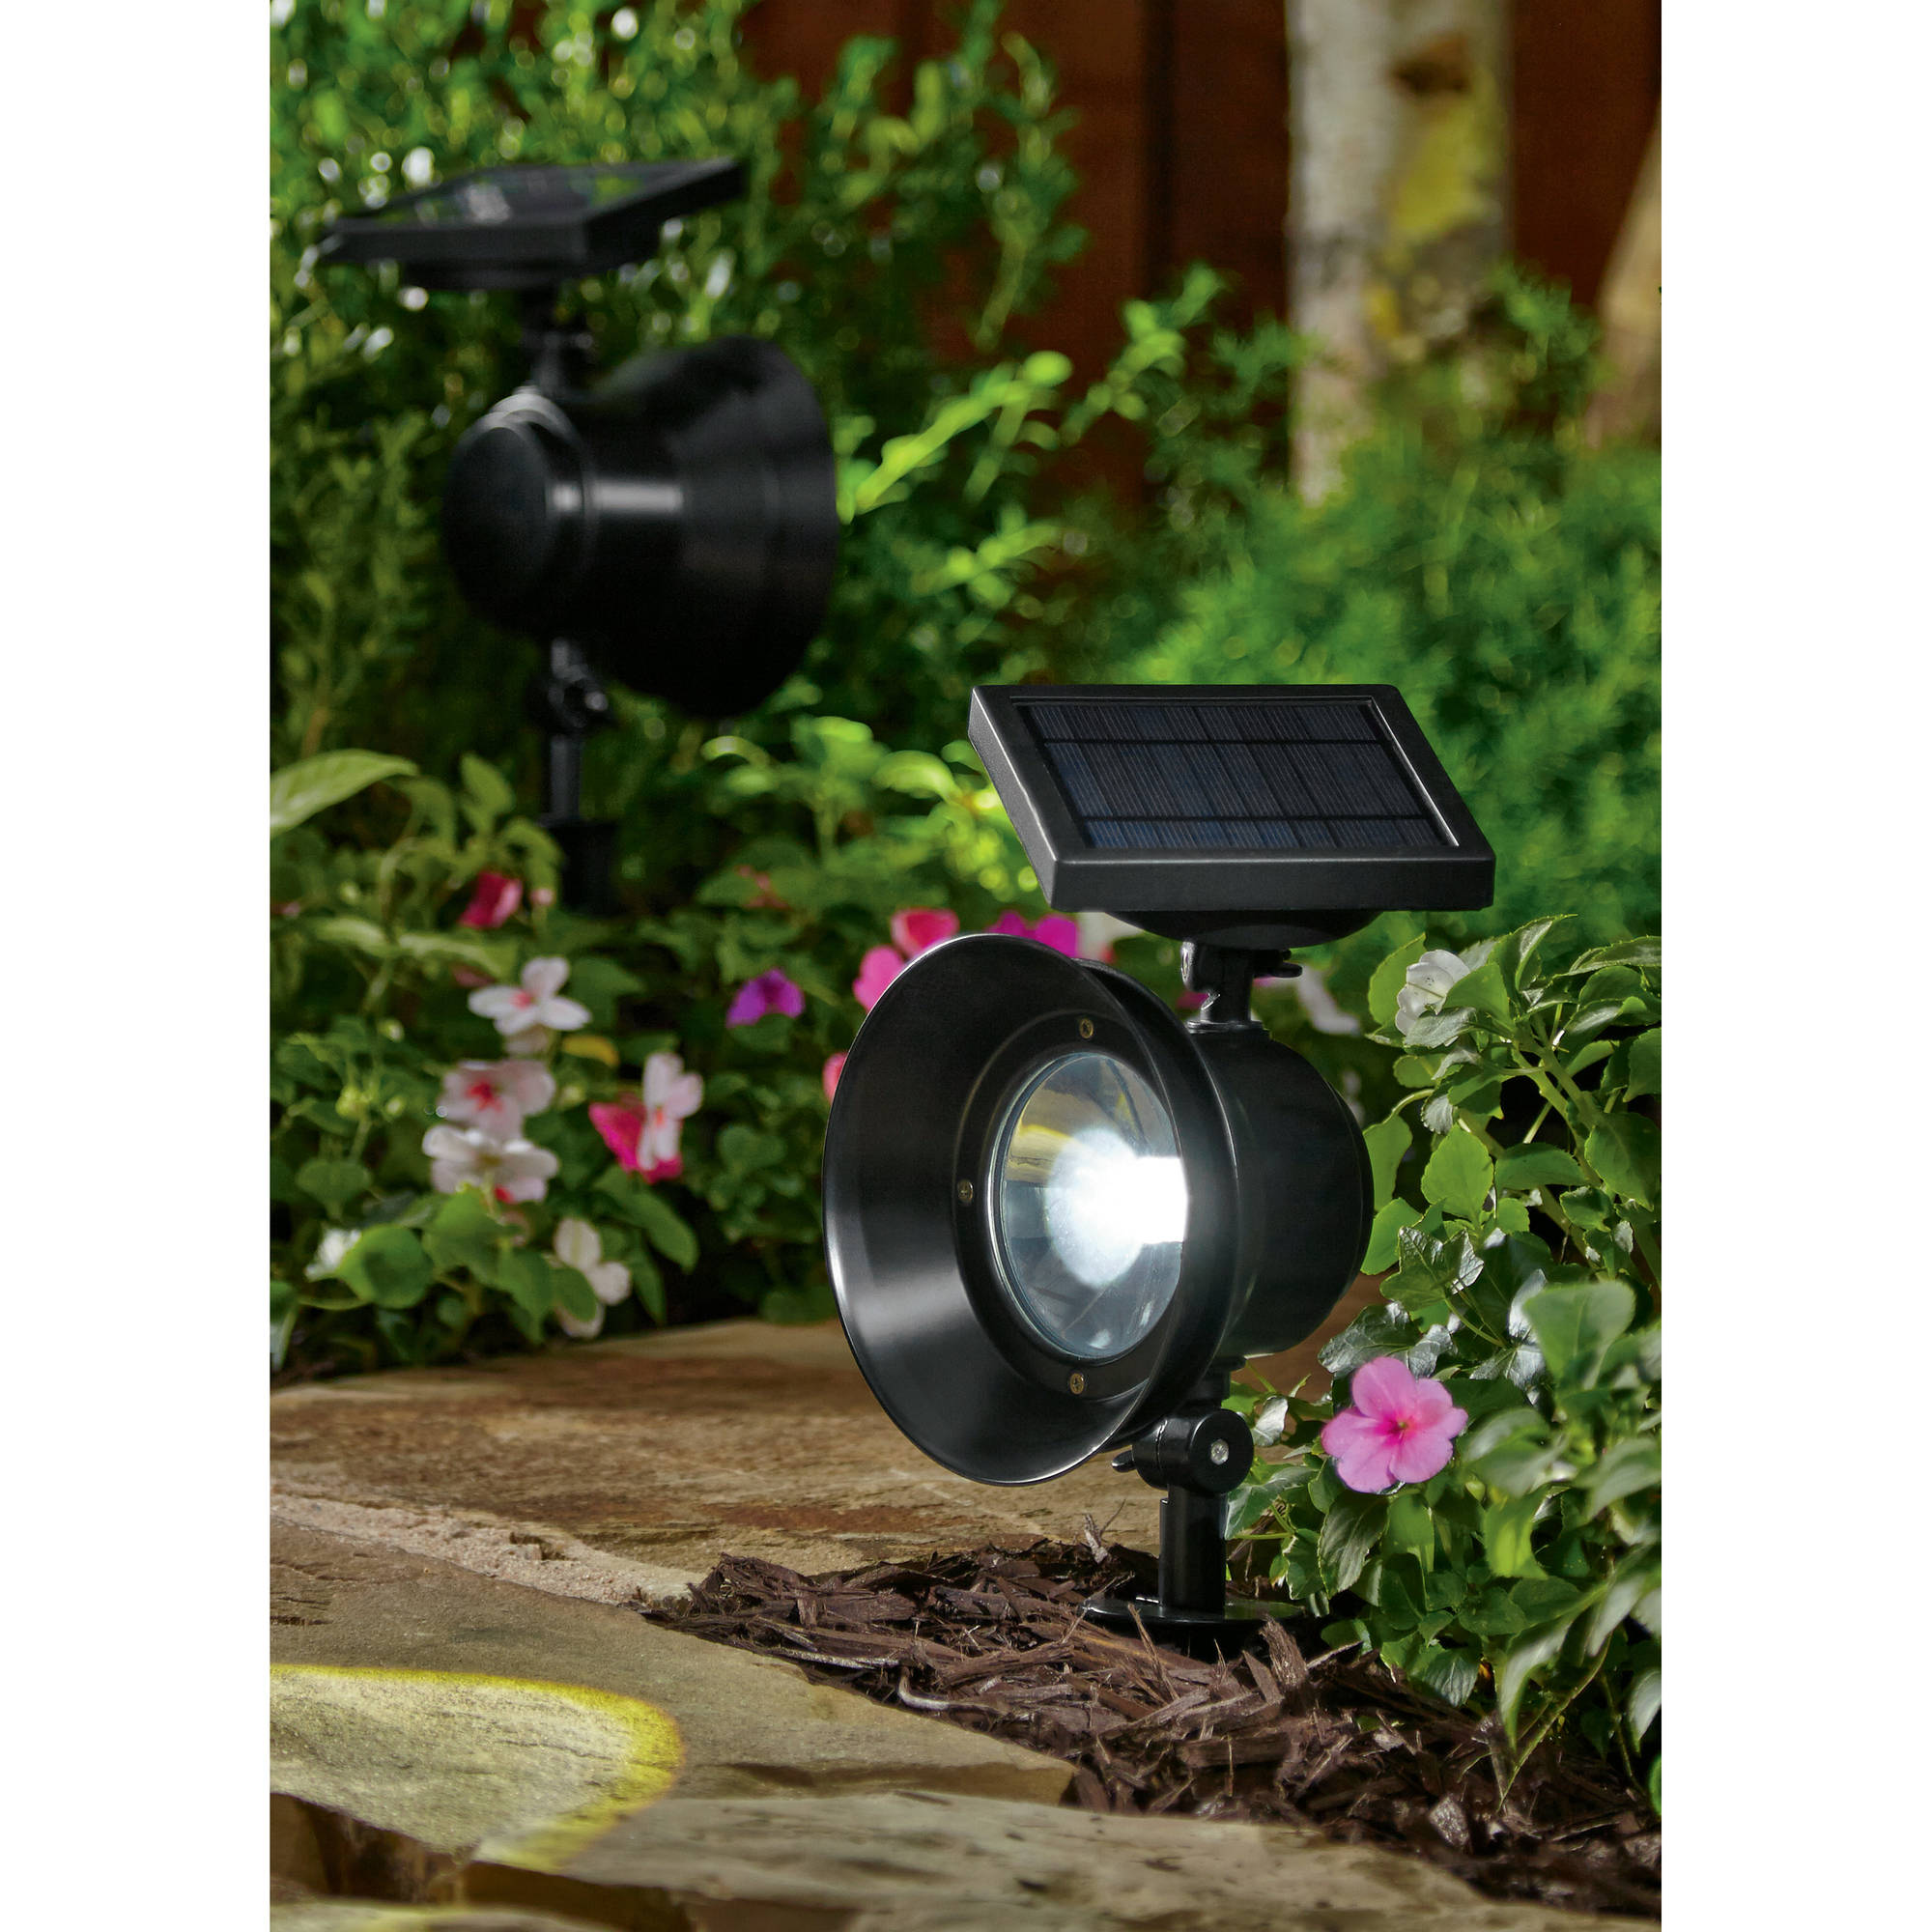 Mainstays 4-Piece Solar-Powered Adjustable Metal Spotlight Set